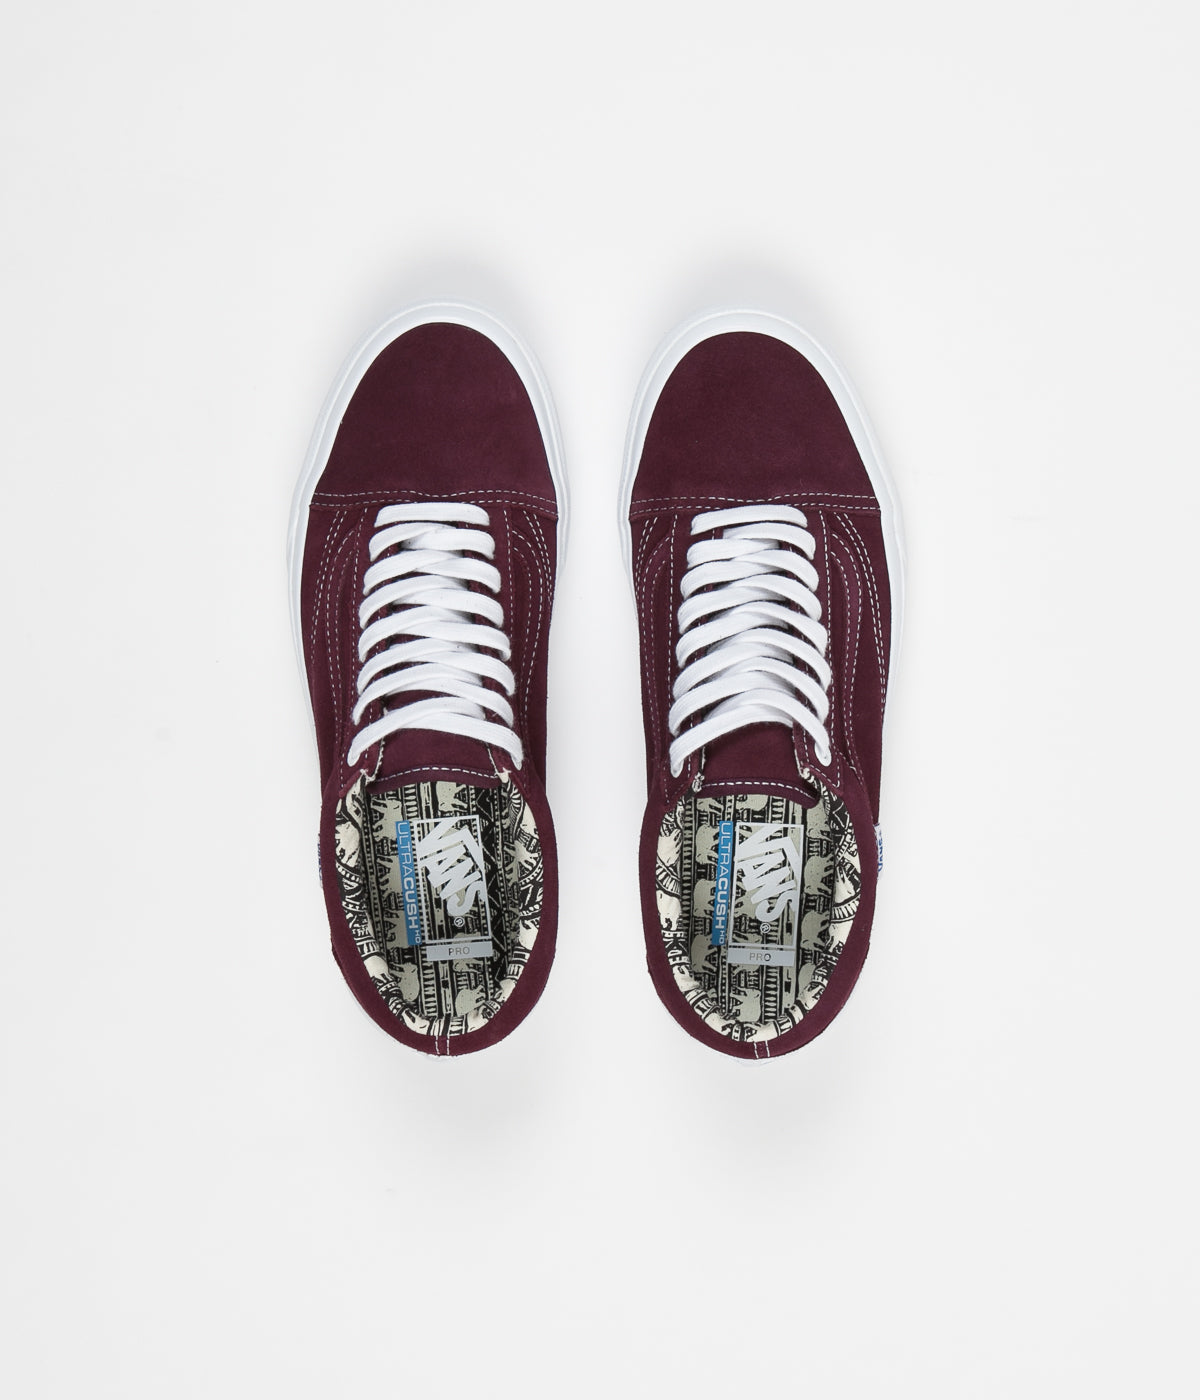 b549cc55c23e Vans Old Skool Pro (Ray Barbee) Shoes - OG Burgundy ...